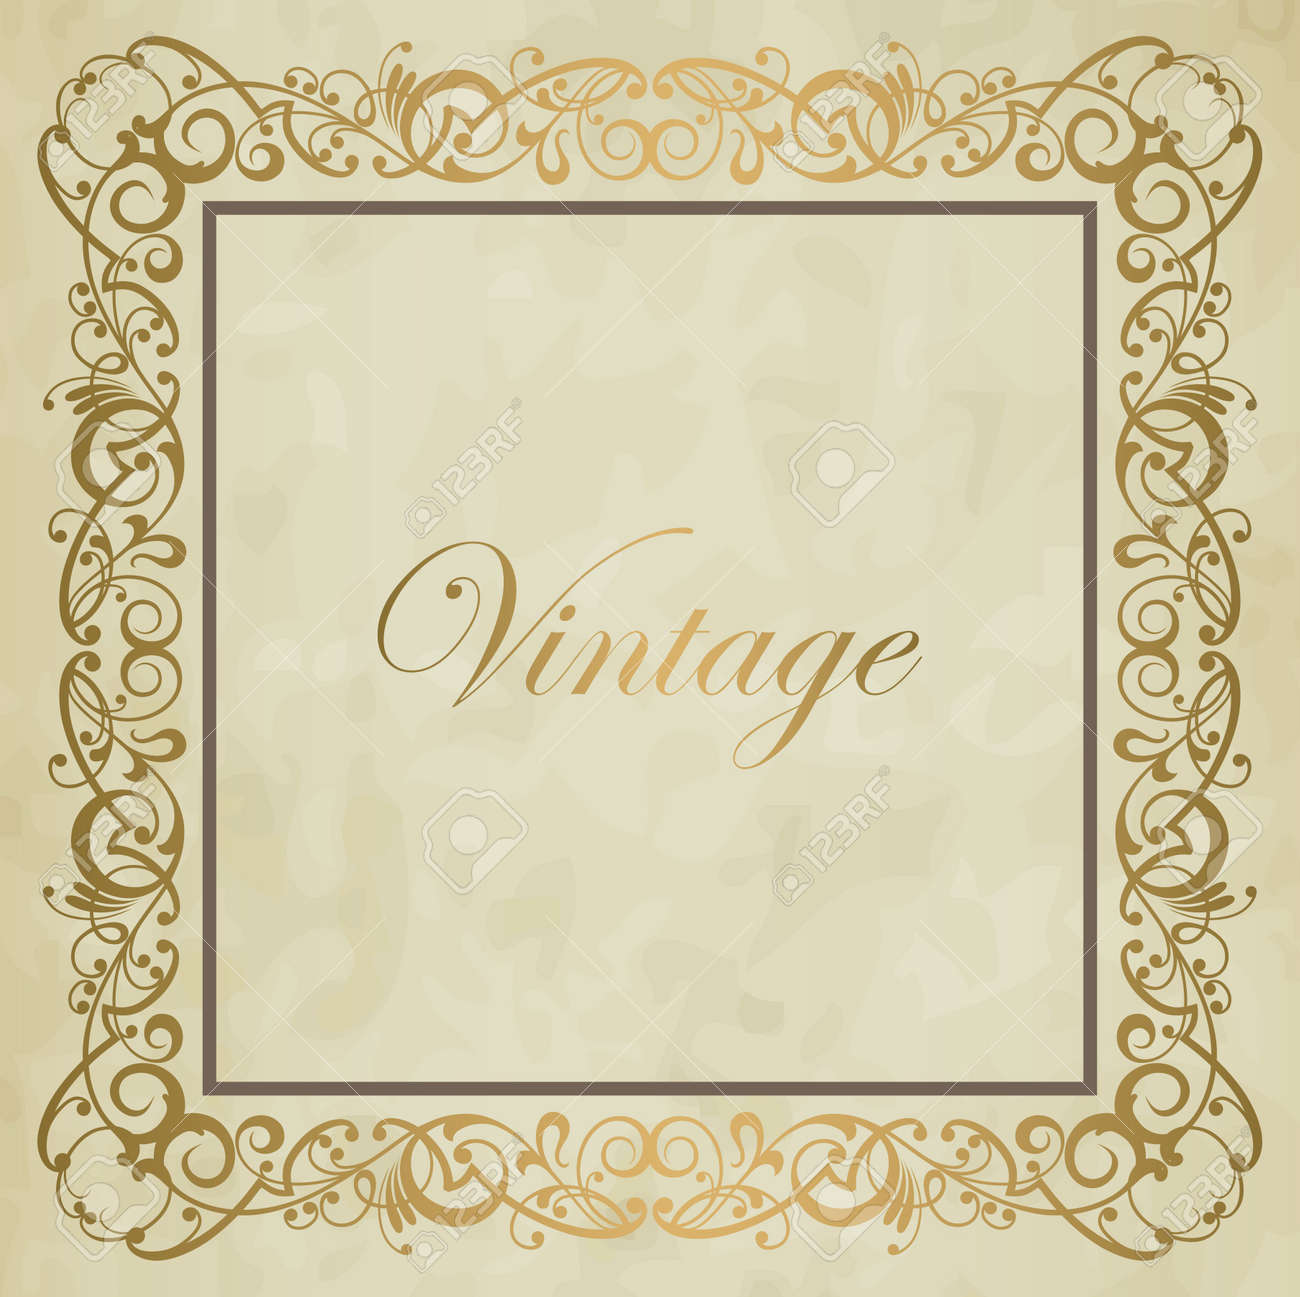 Vintage vector background Stock Vector - 13121039